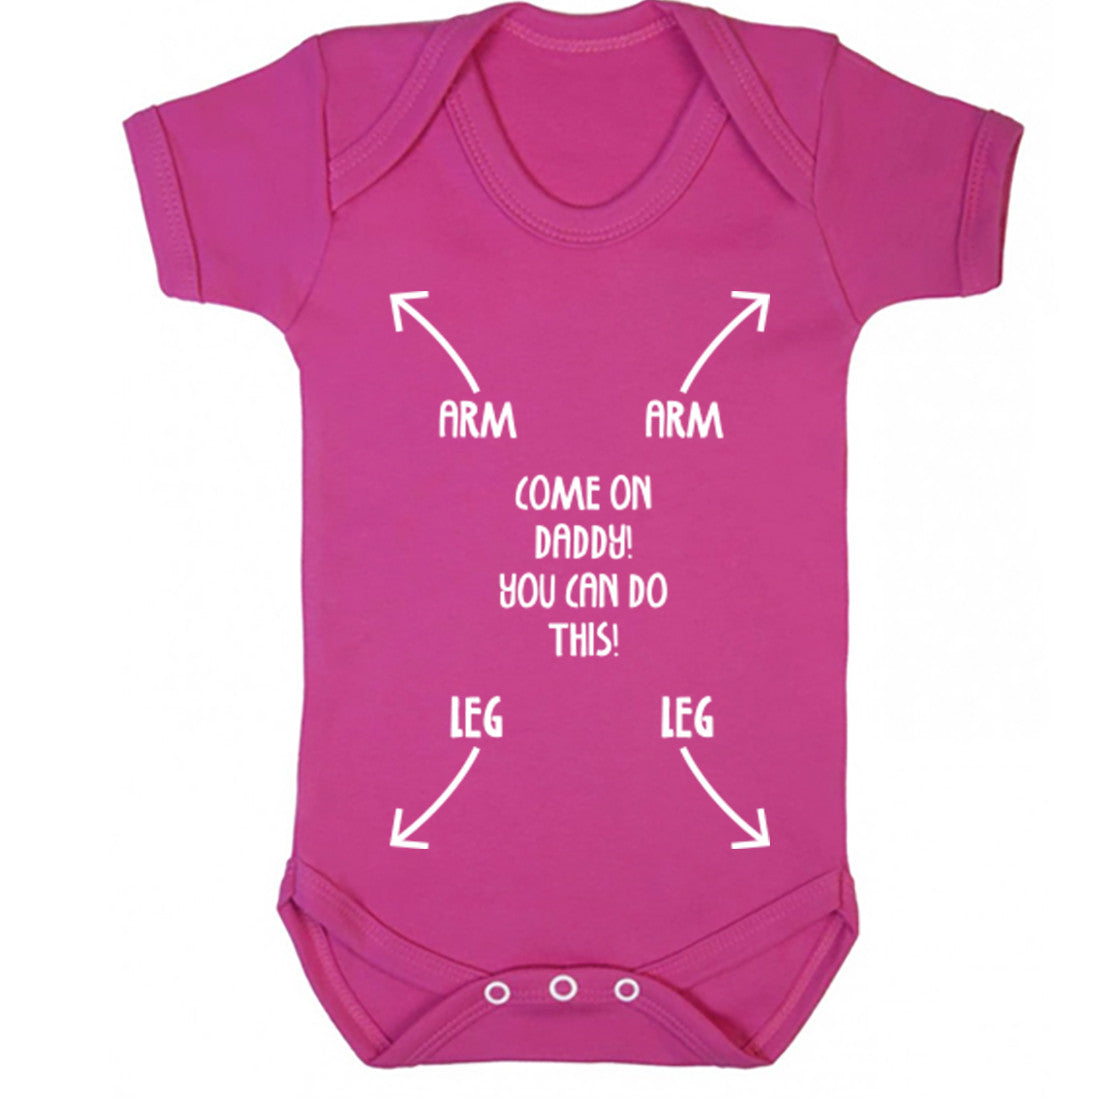 Come On Daddy You Can Do This Baby Vest K0368